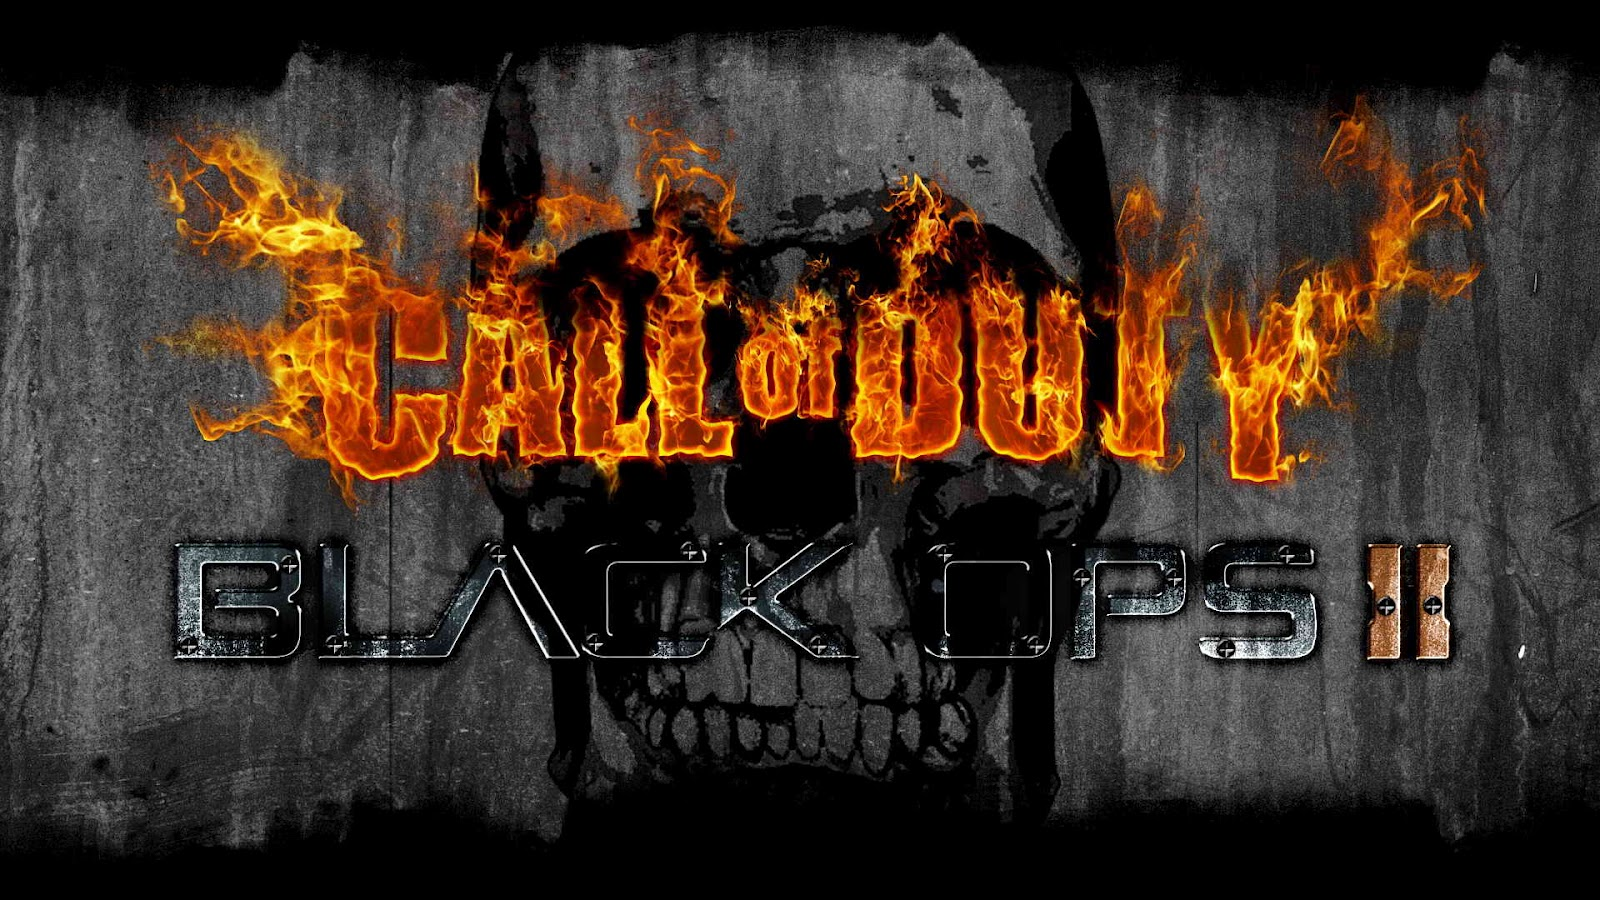 Call Of Duty Black Ops 2 Wallpaper 1600x900 67342